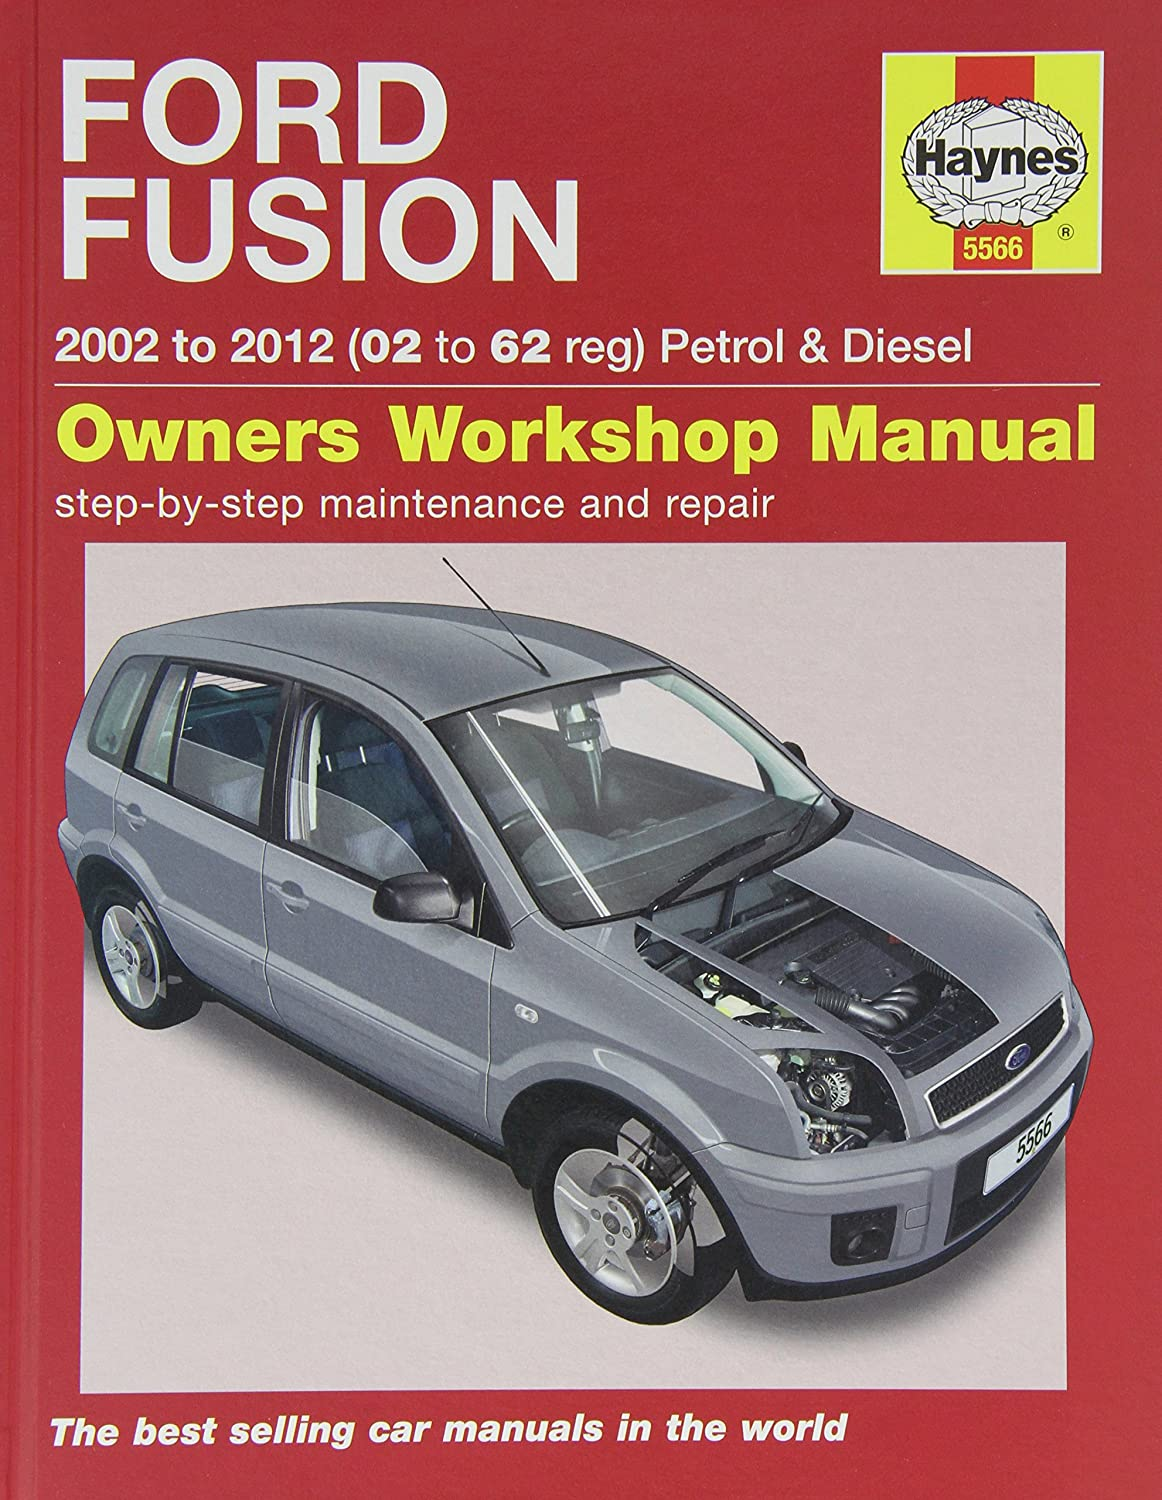 Haynes 5566 Service and Repair Workshop Manual: Amazon.co.uk: Car &  Motorbike